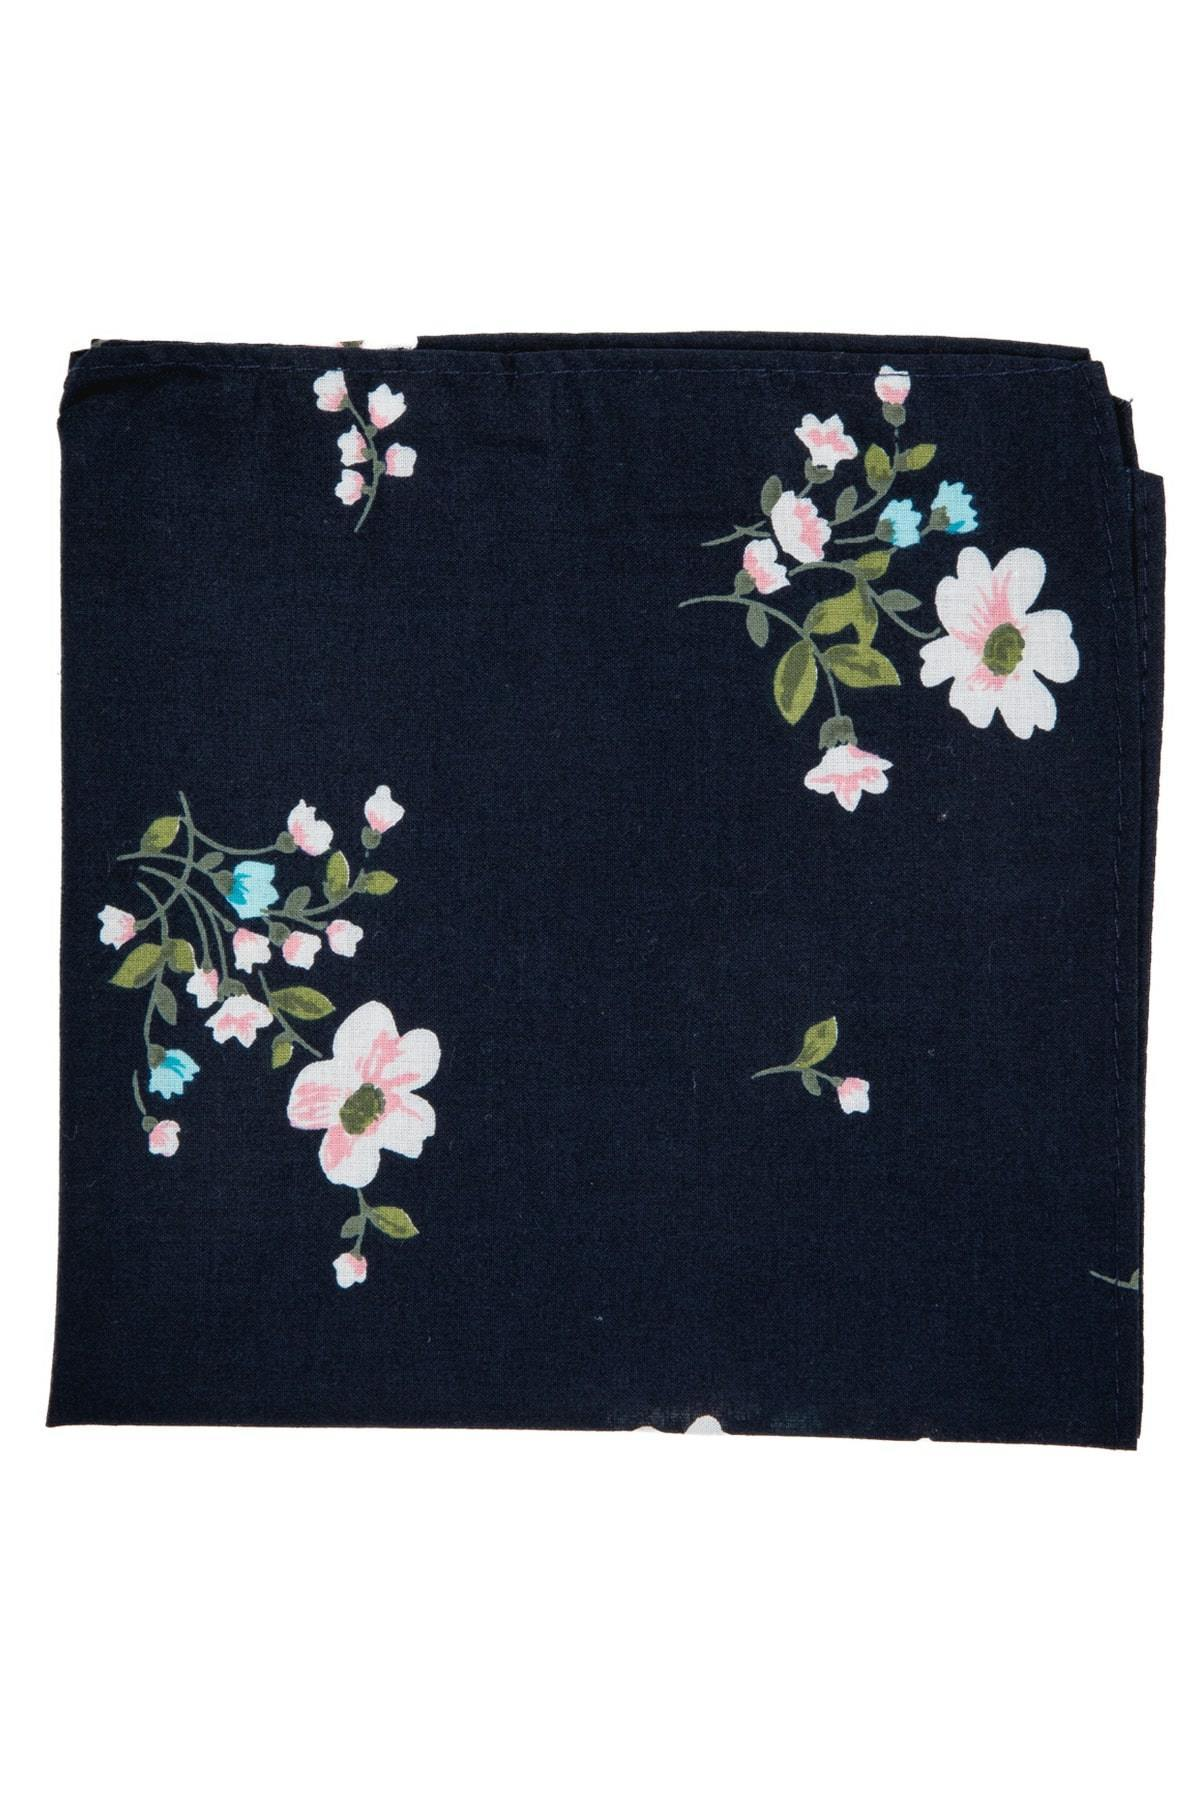 An ivy Pocket square The Navy Flower